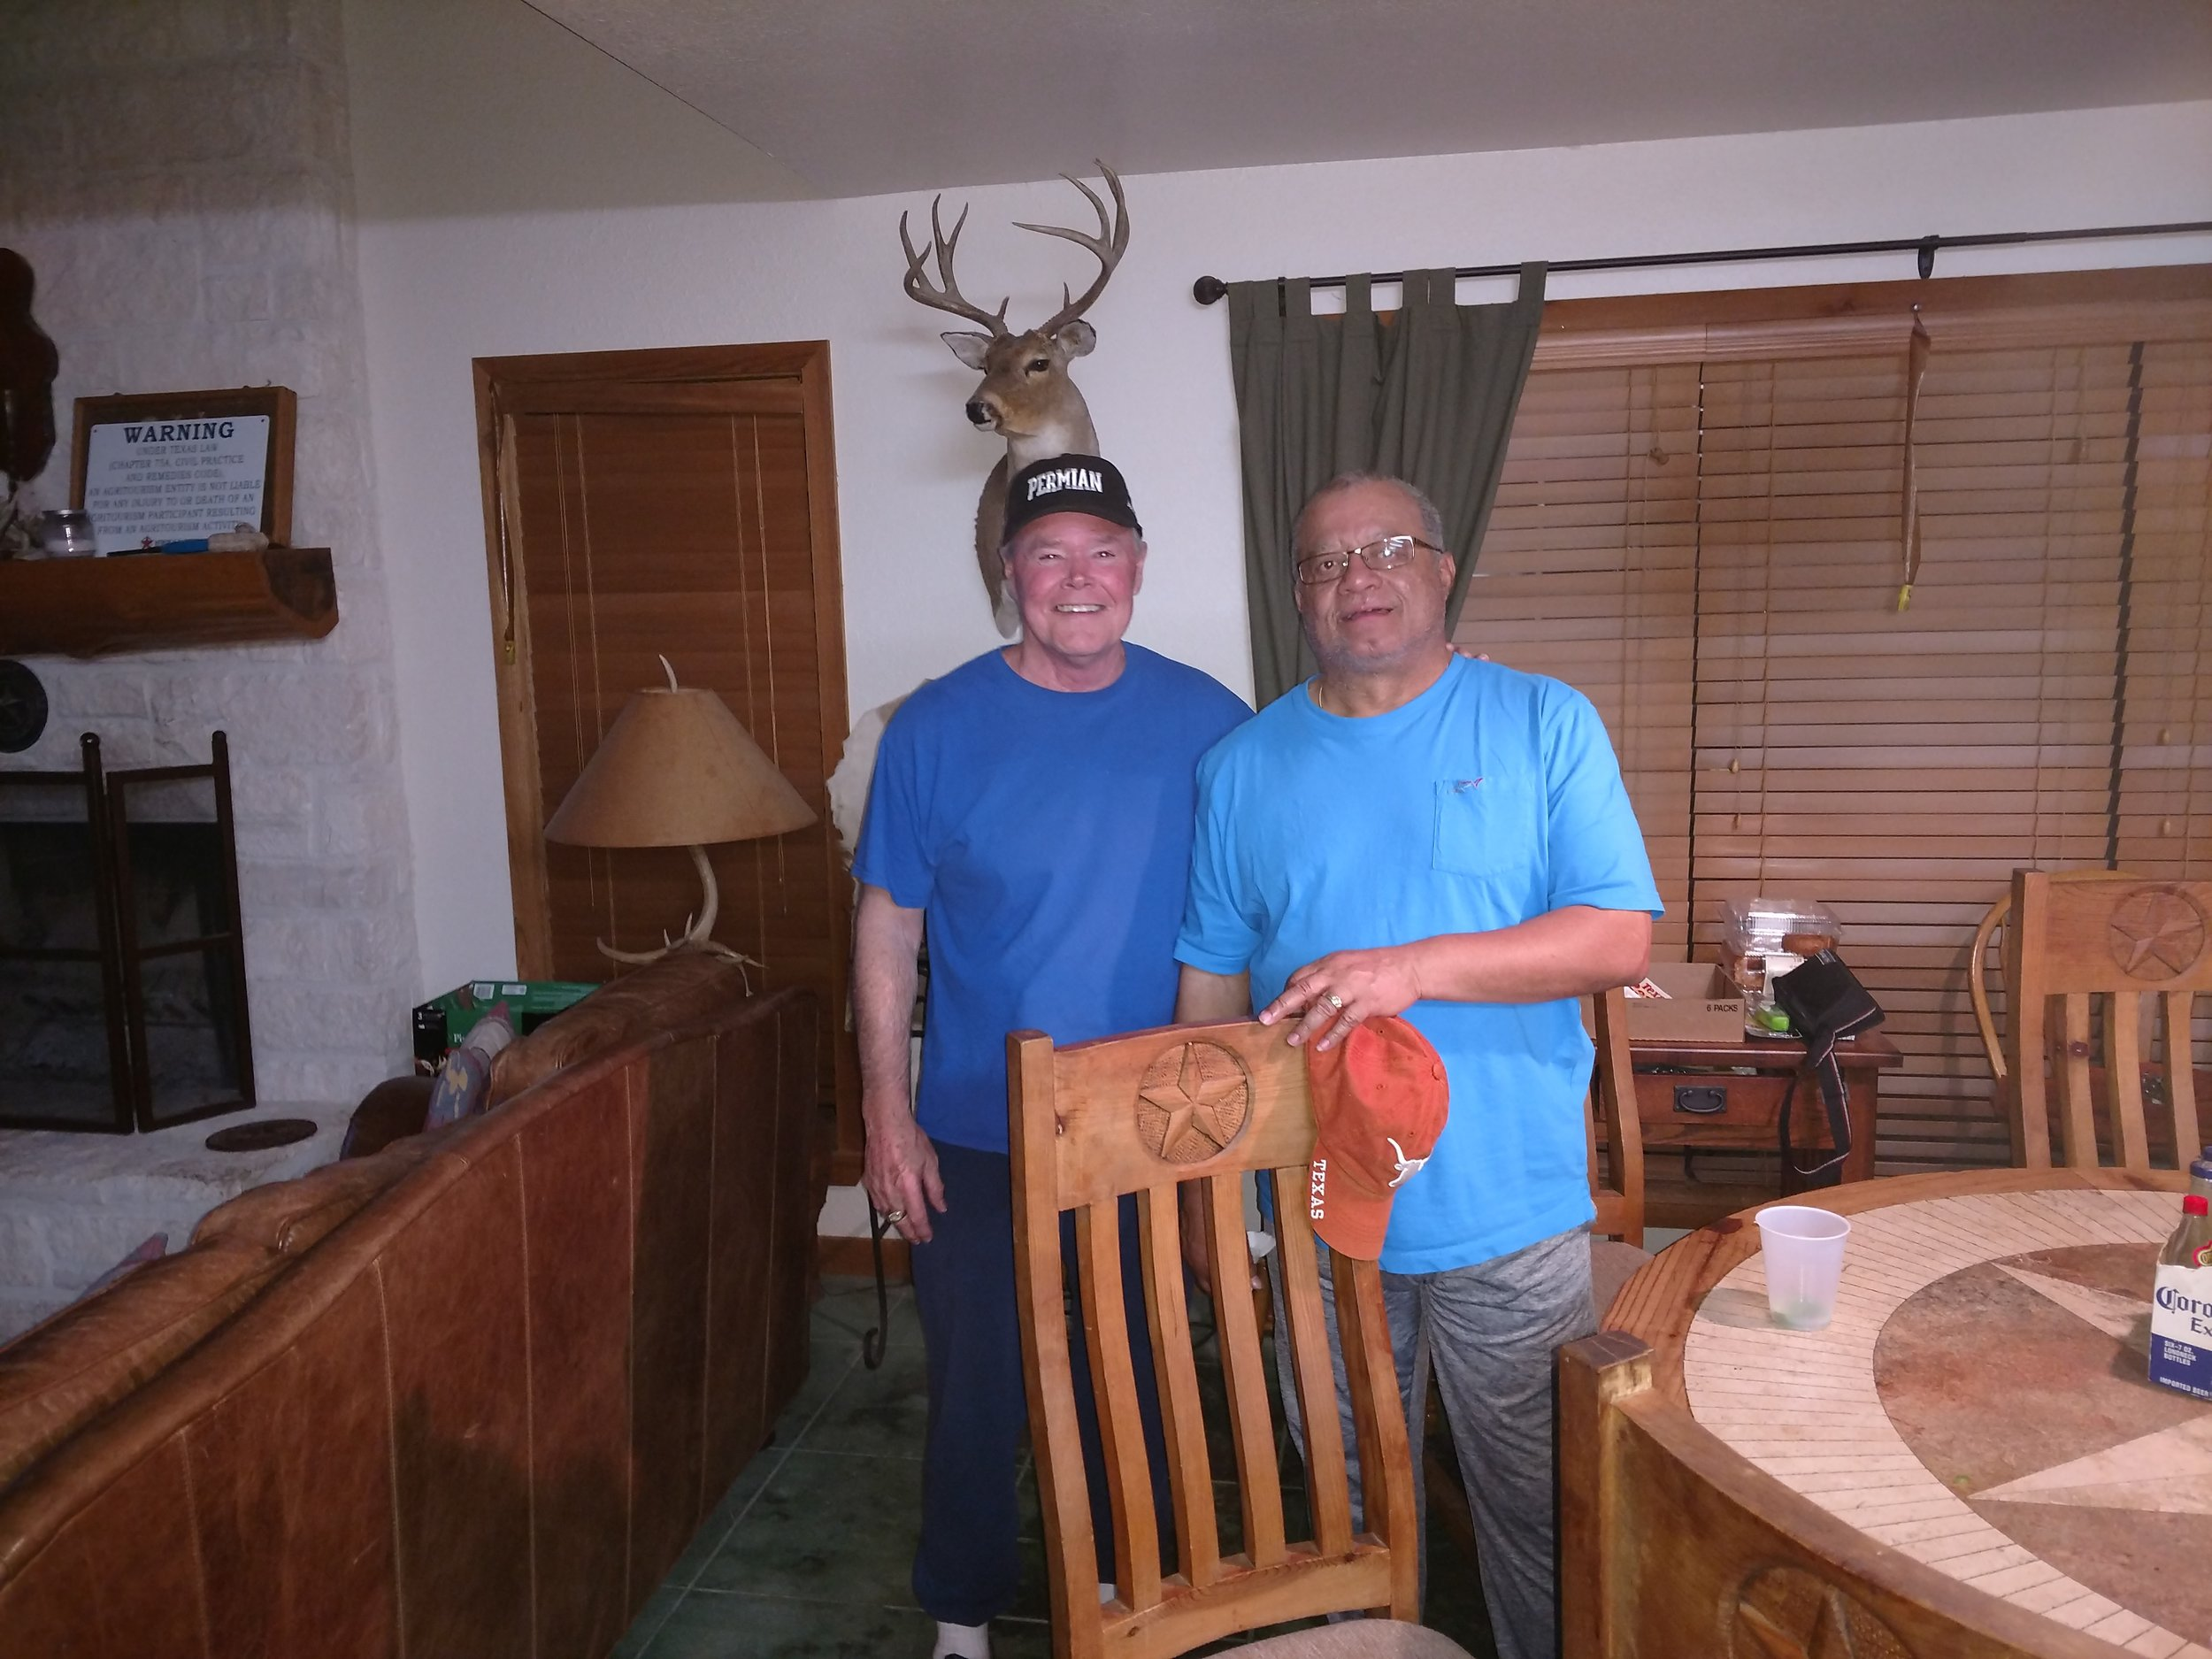 The last place winners at horseshoes -Lonnie and Billy